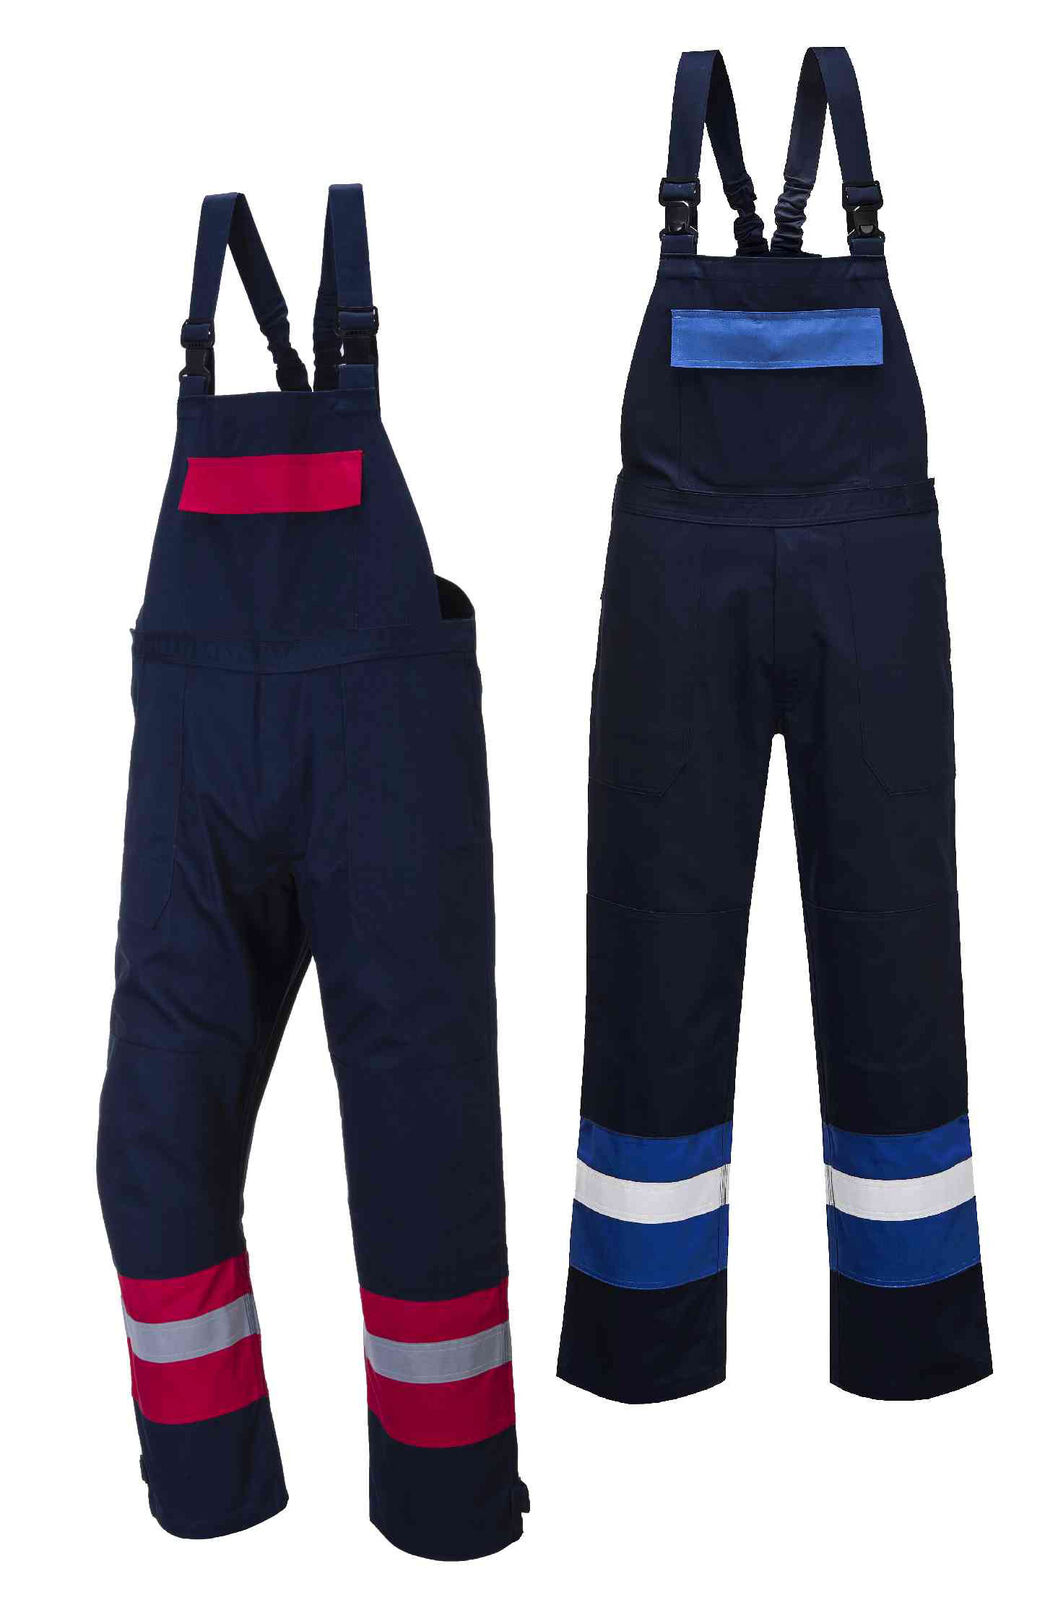 Portwest FR57 Bizflame Plus navy flame-resistant anti-static bib and brace S-4XL